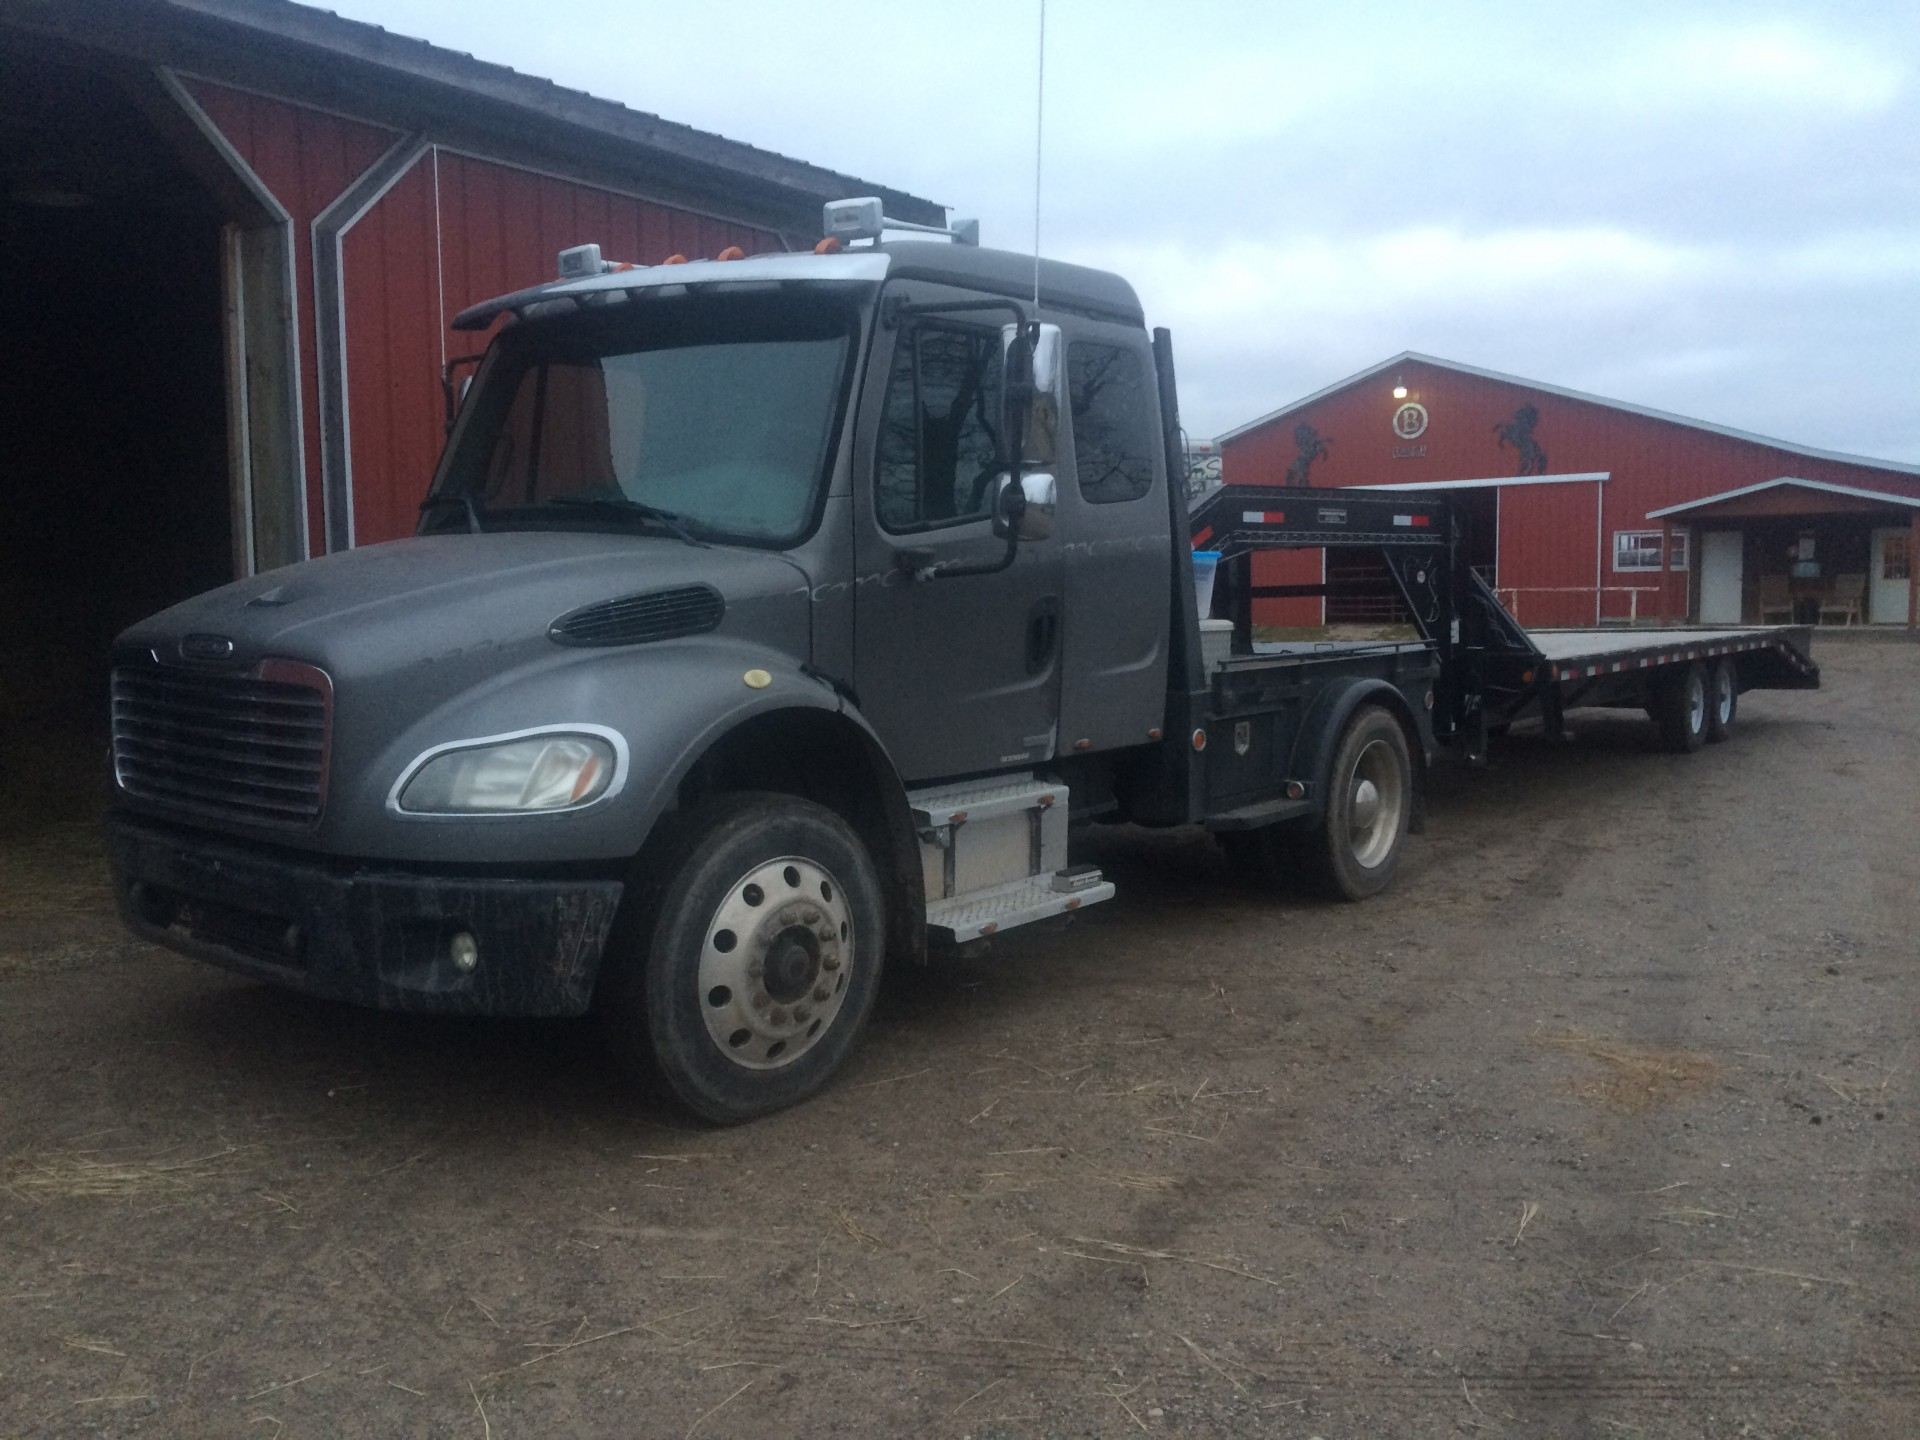 2004 Freightliner M2 Business Class, ext  cab, flatbed, cat